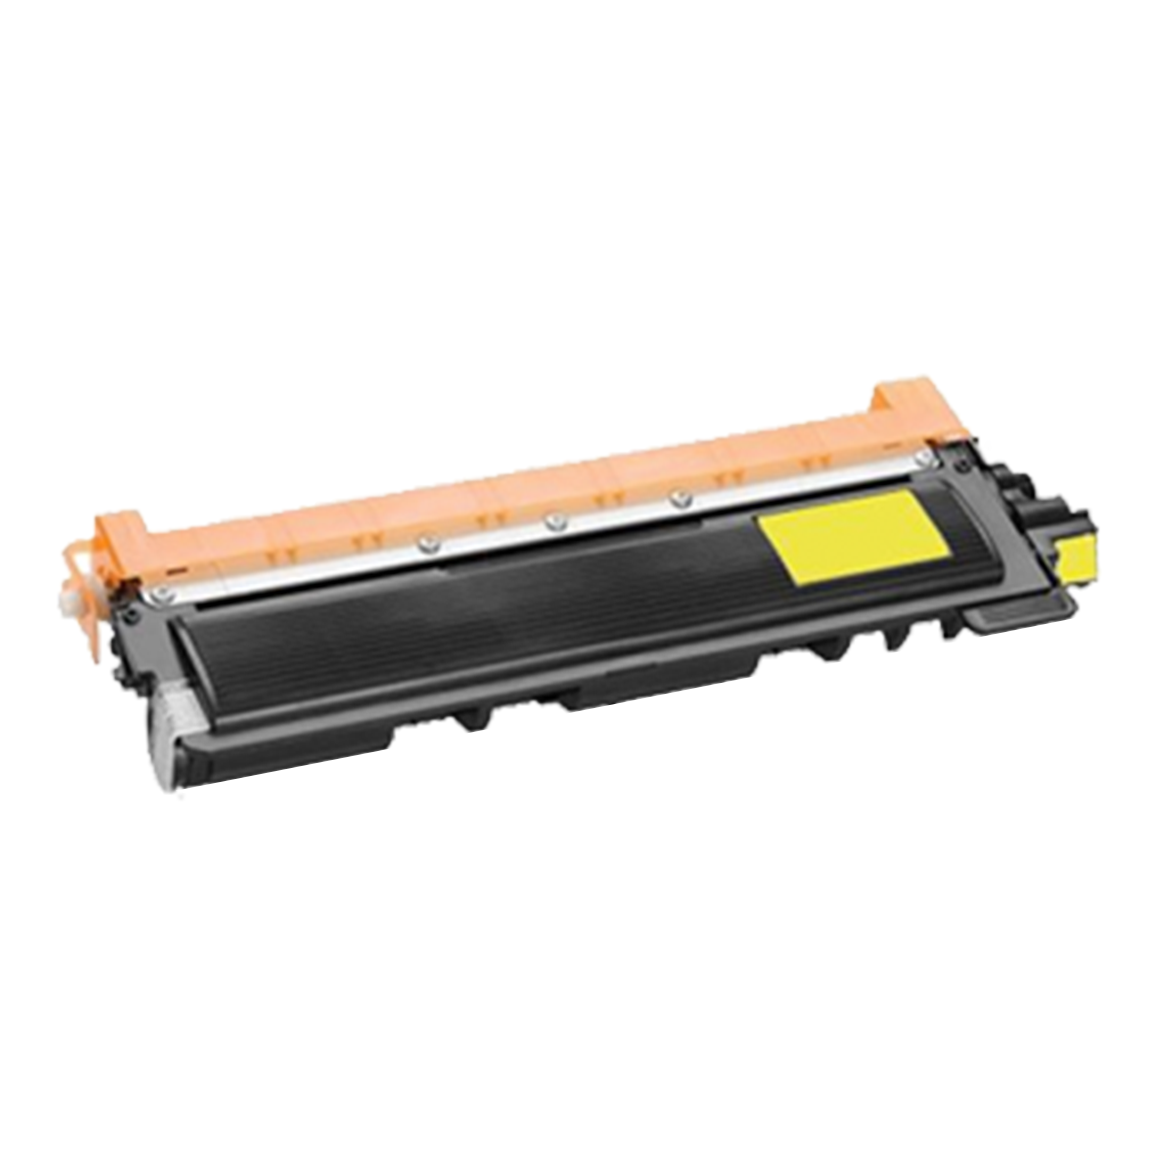 Huismerk Brother TN-230 toner geel